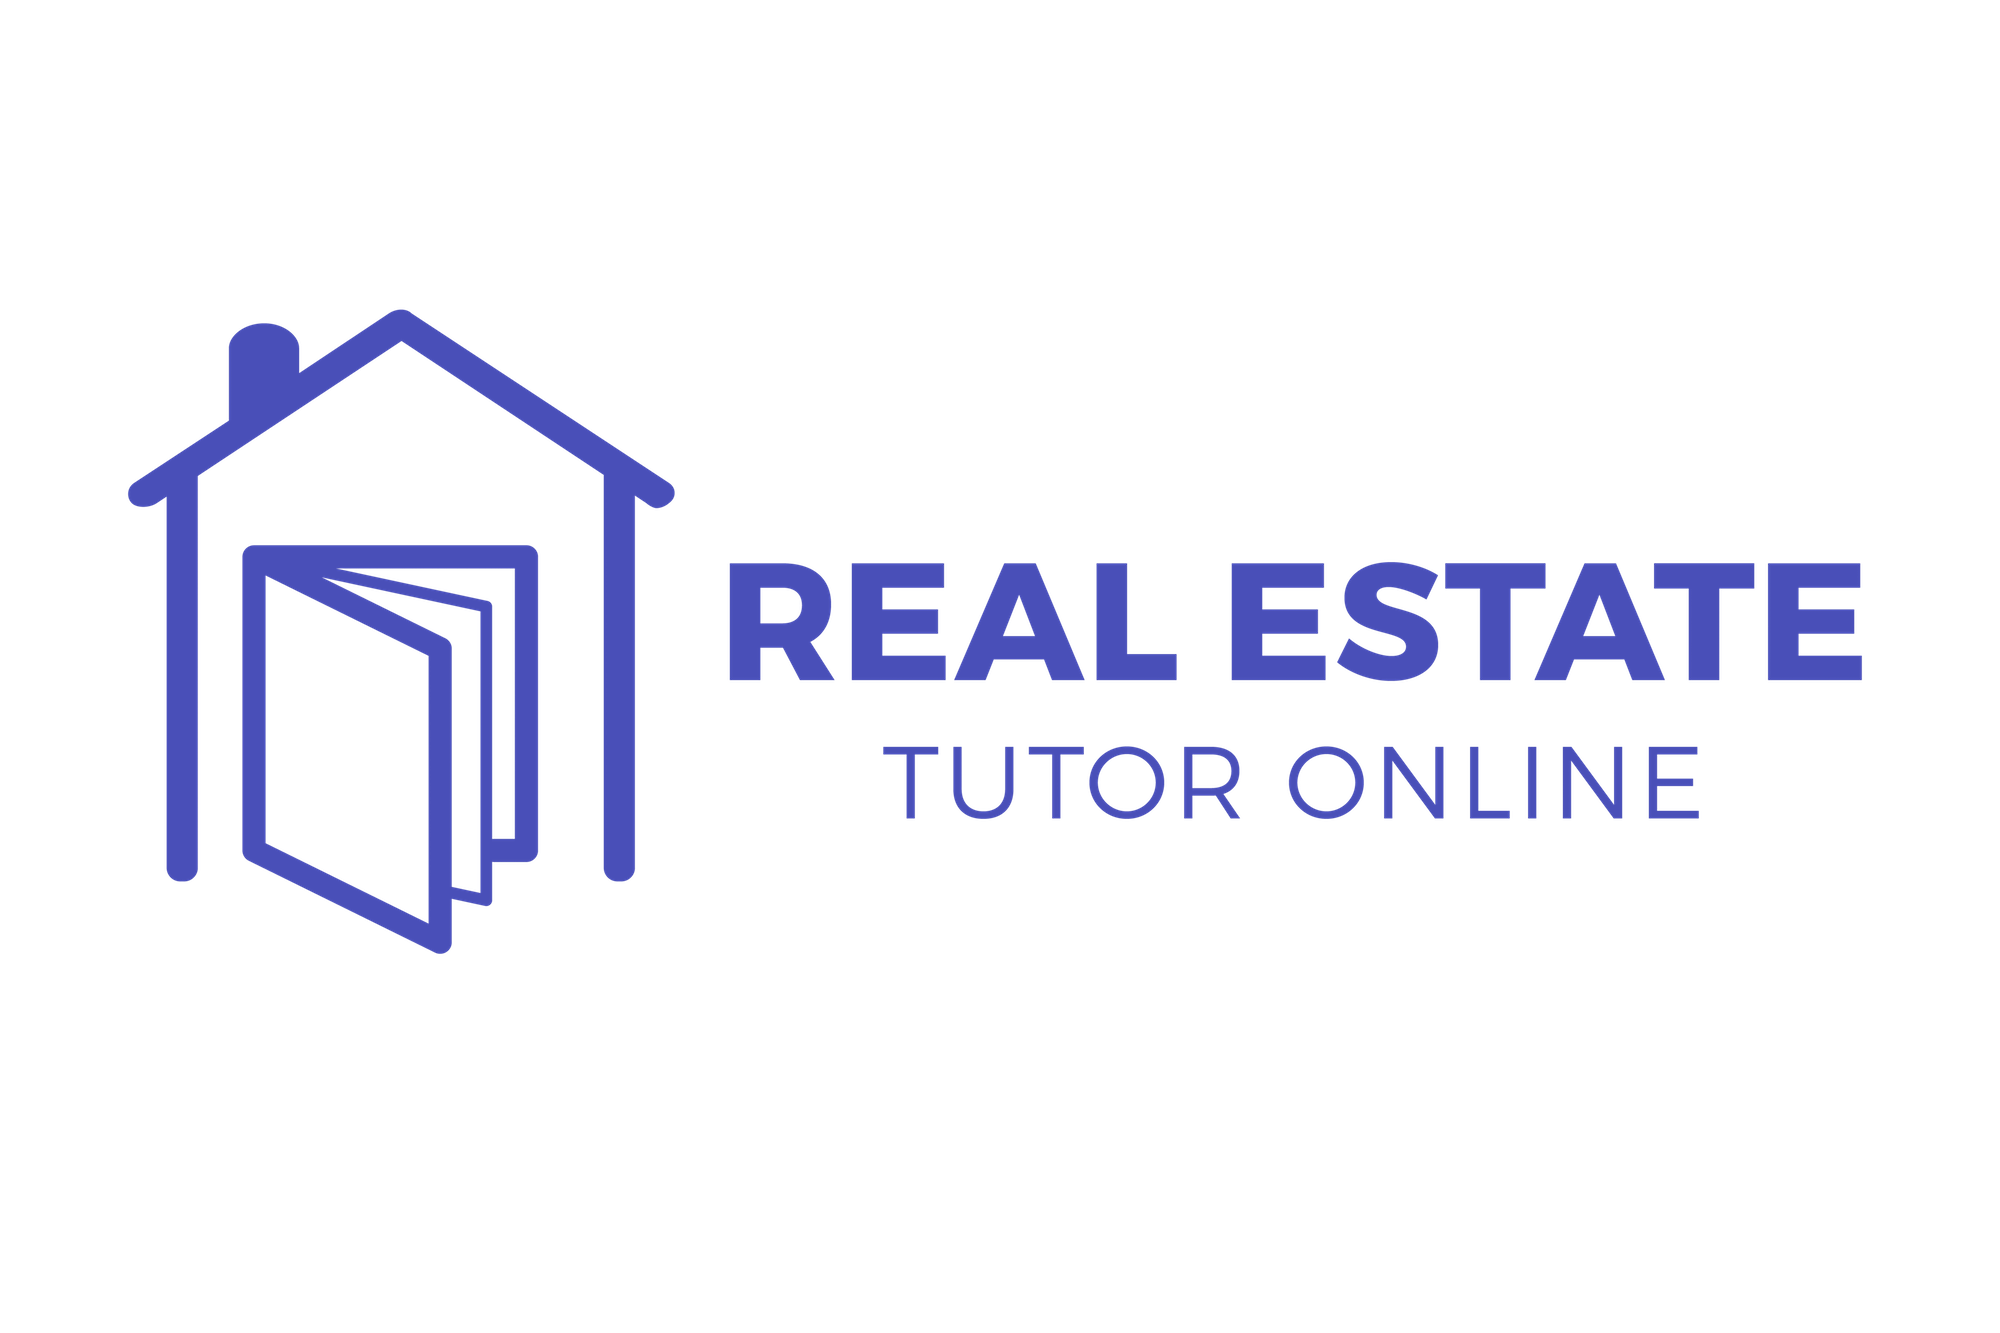 Real Estate Tutor